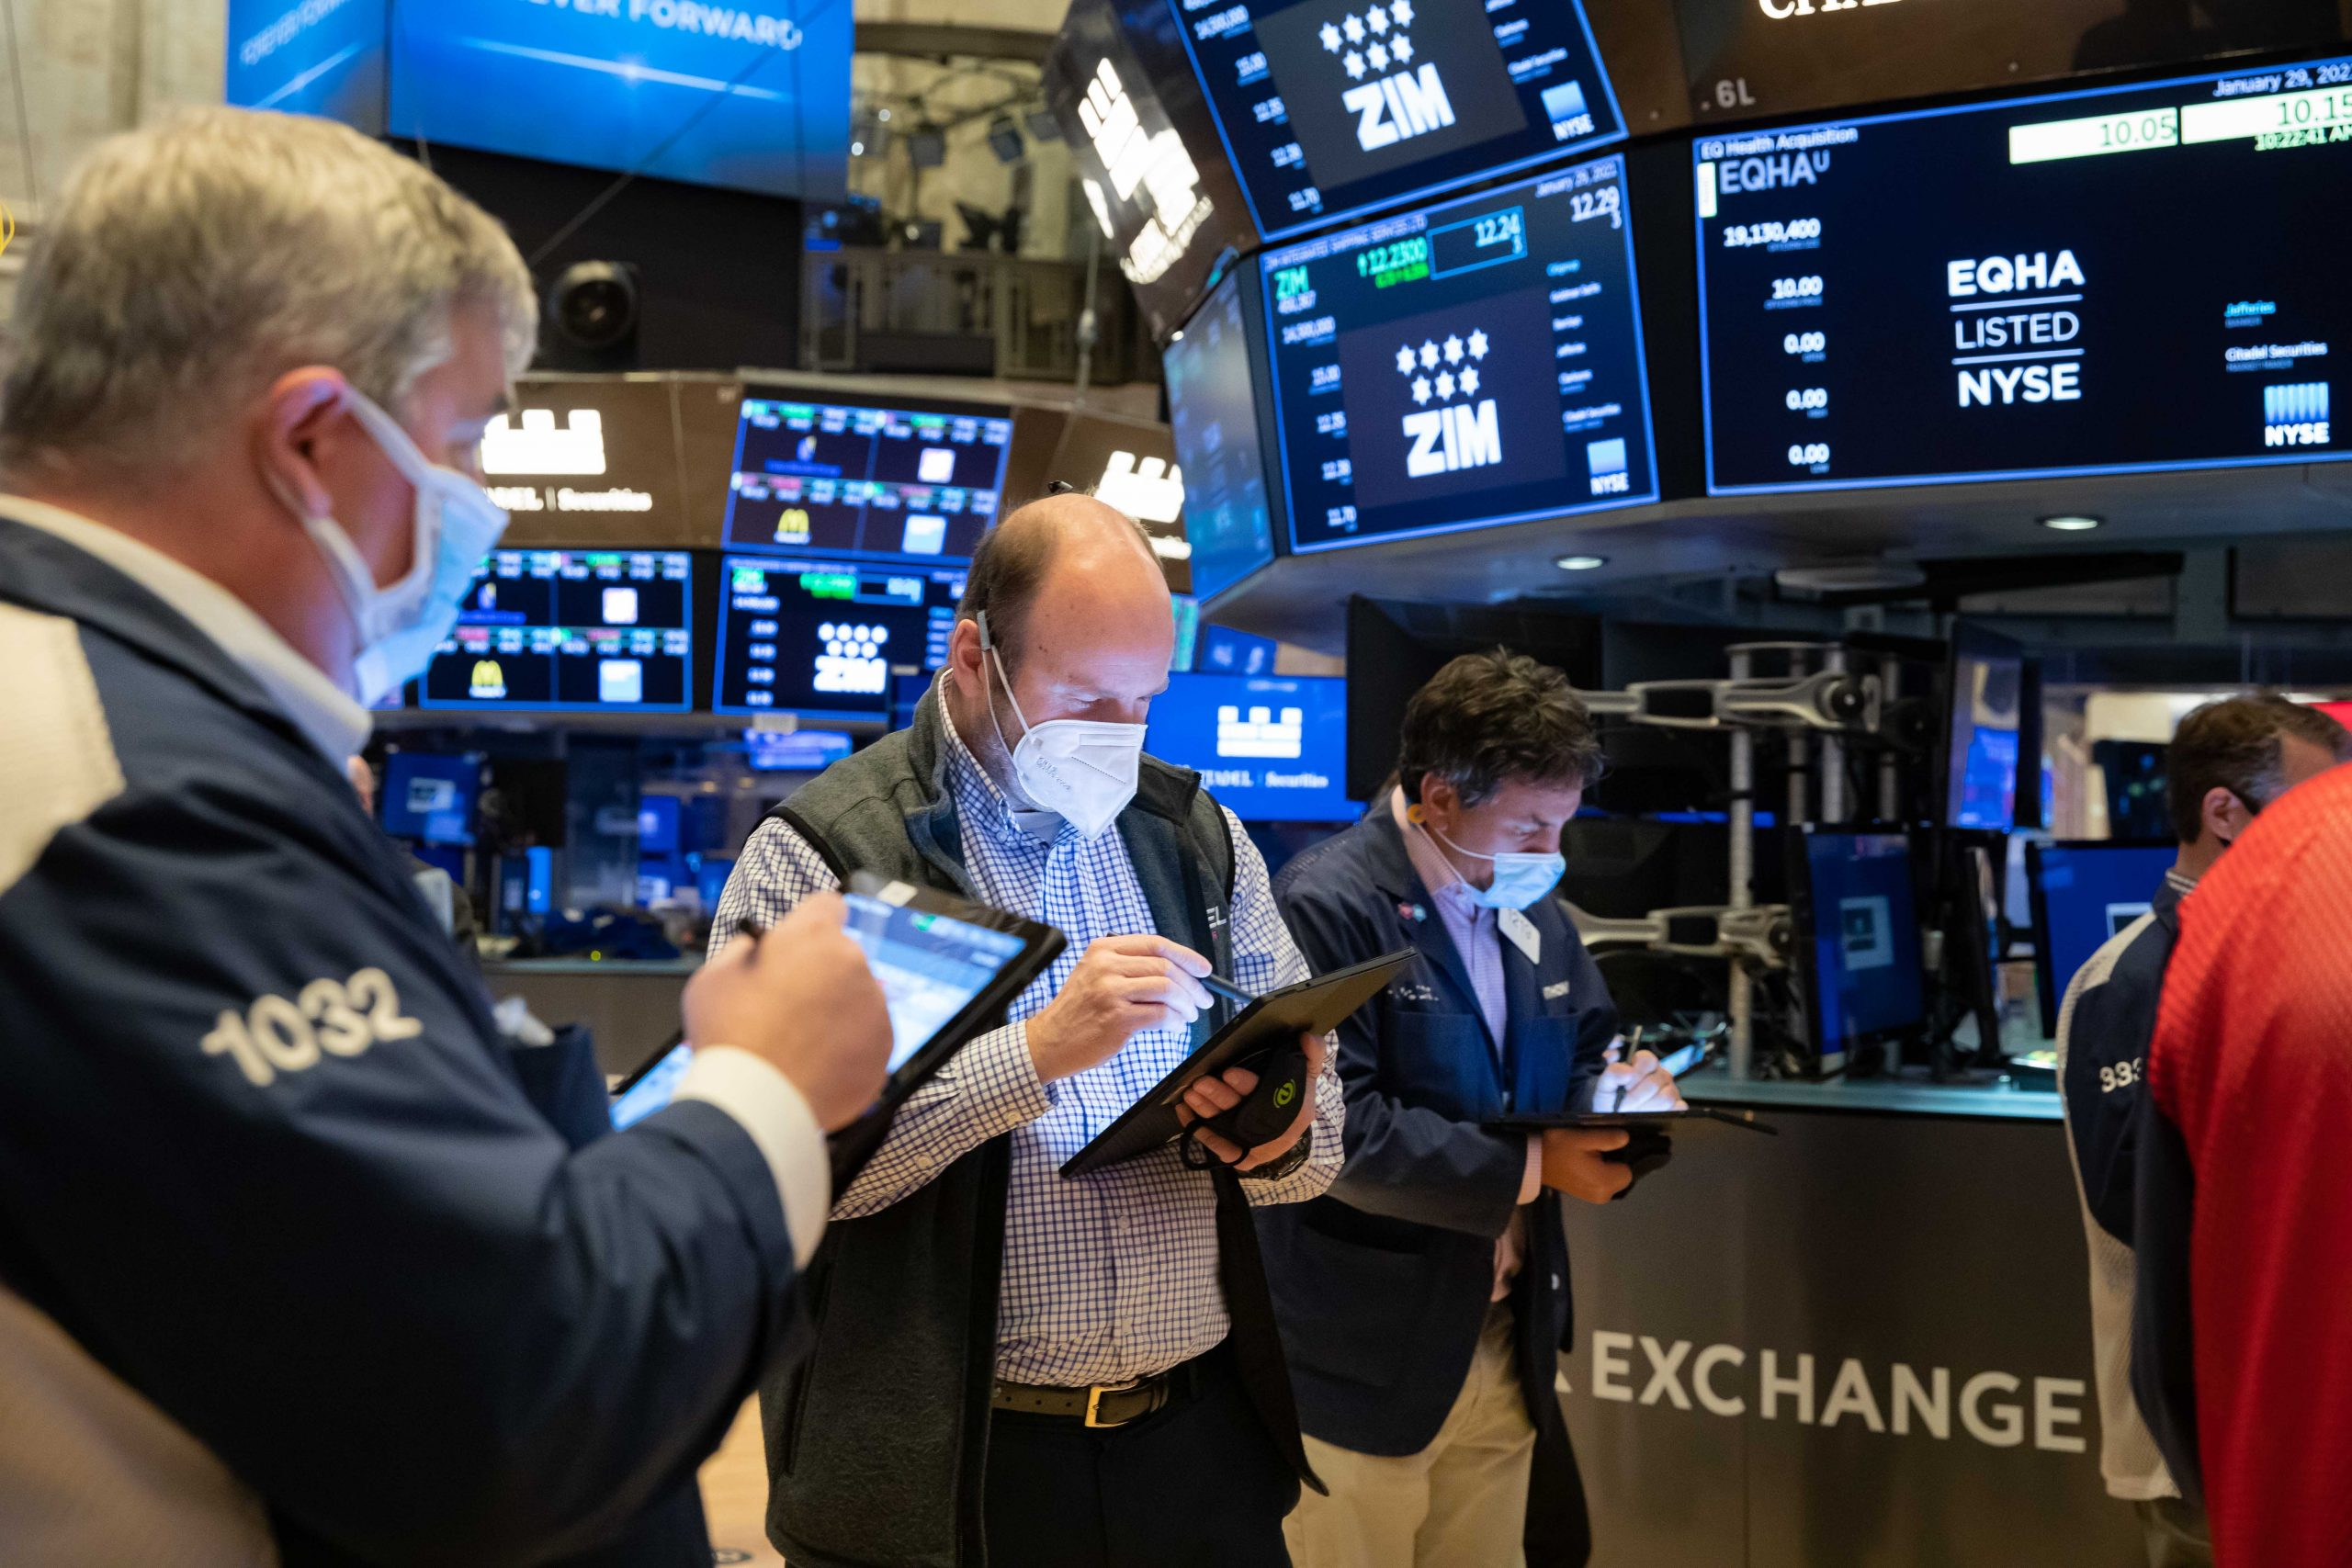 stock-futures-dip-after-dow-closes-at-record-level